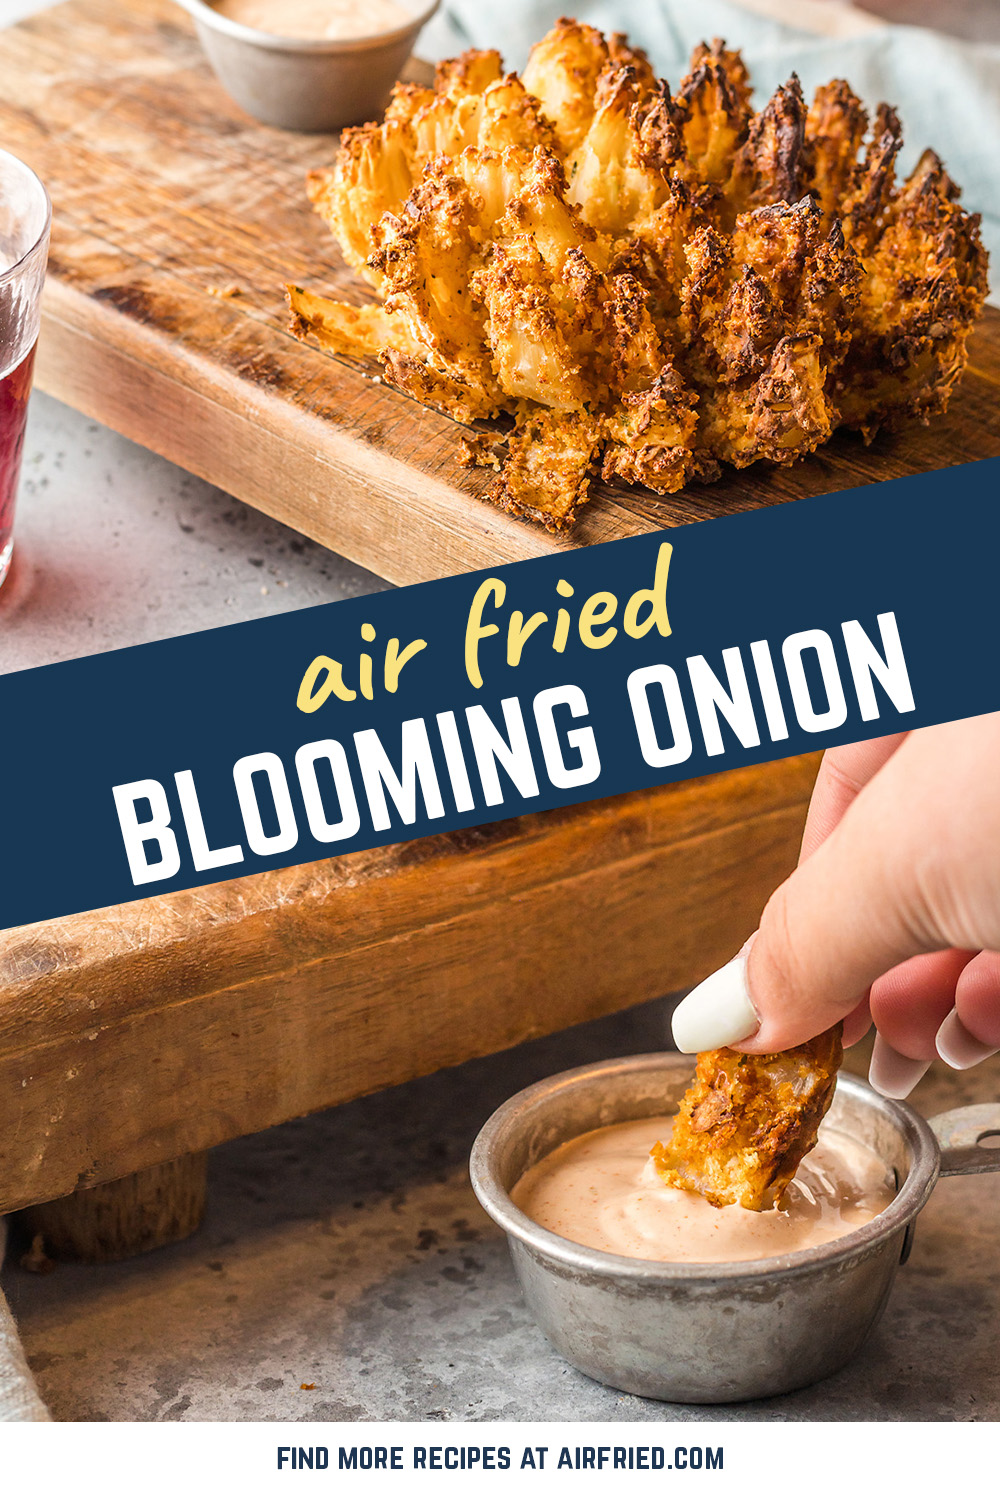 Blooming onions are beautiful and delicious!  Try them in our copycat Outback sauce!  #recipes #appetizers #airfried